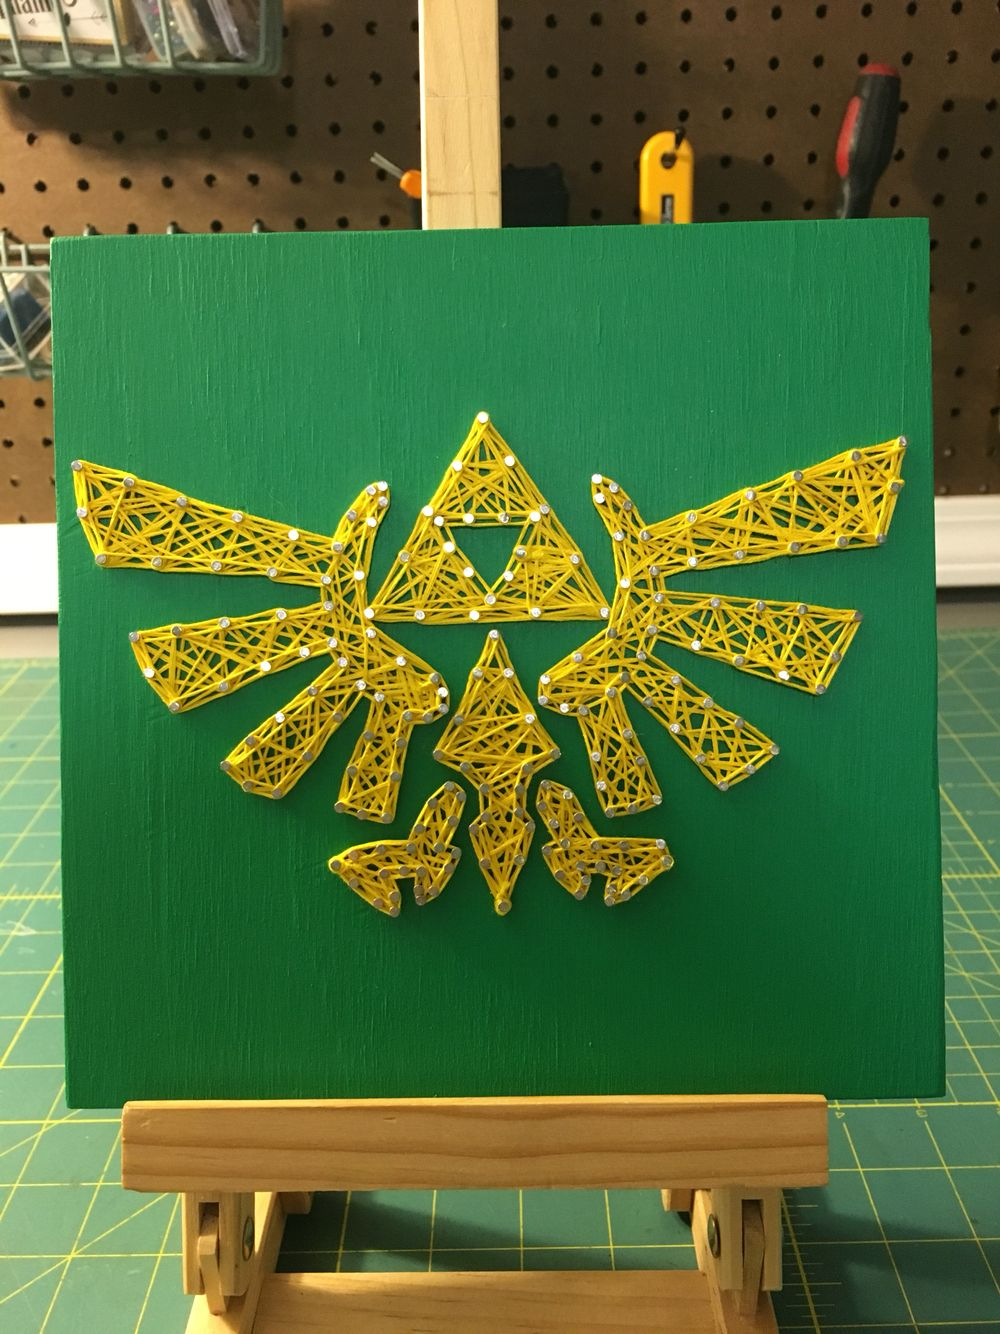 Zelda String Art | Strings by Stephanie | Pinterest | String art ...